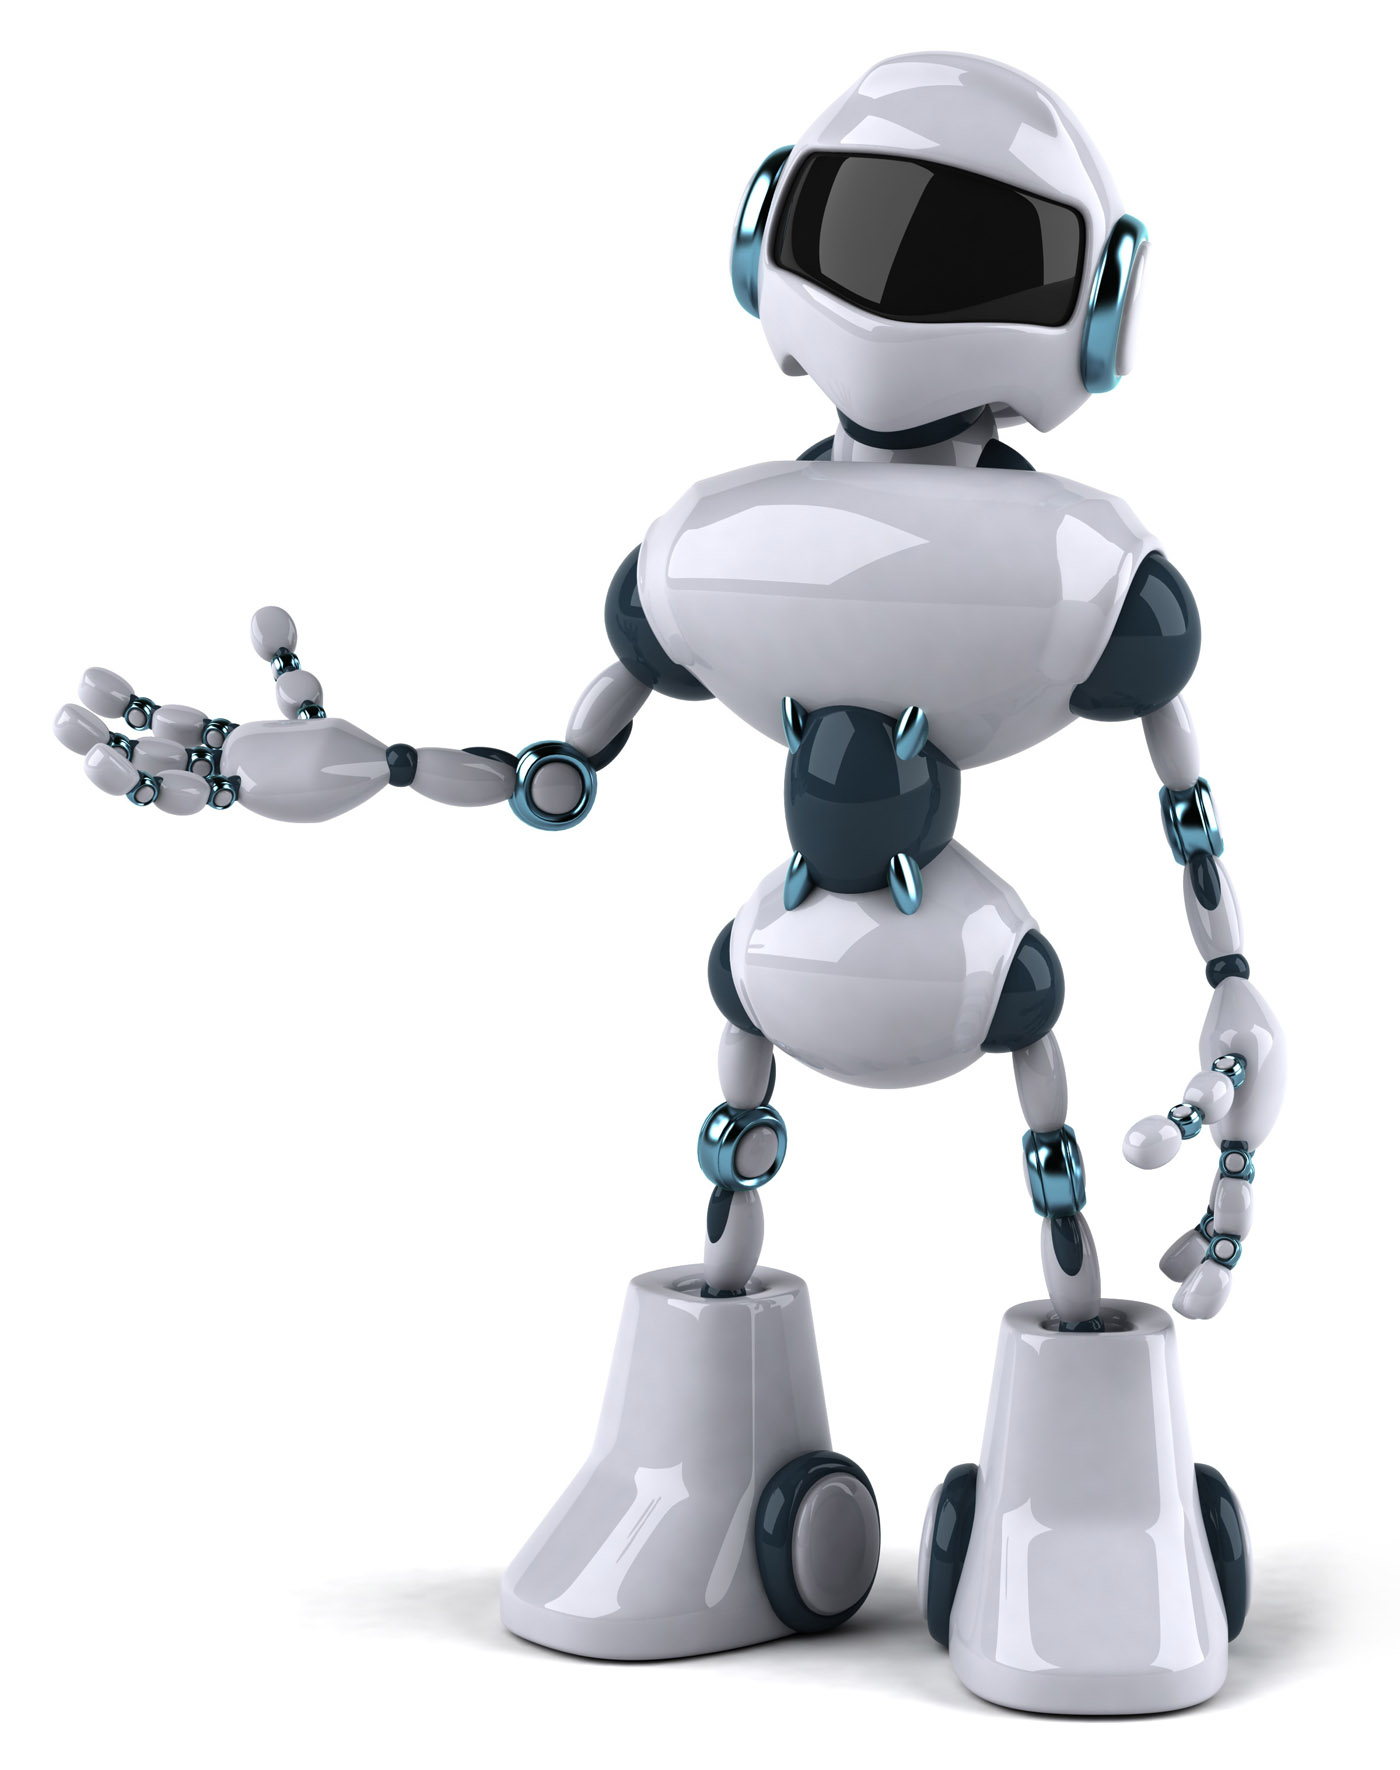 HQ Robot Wallpapers | File 181.79Kb